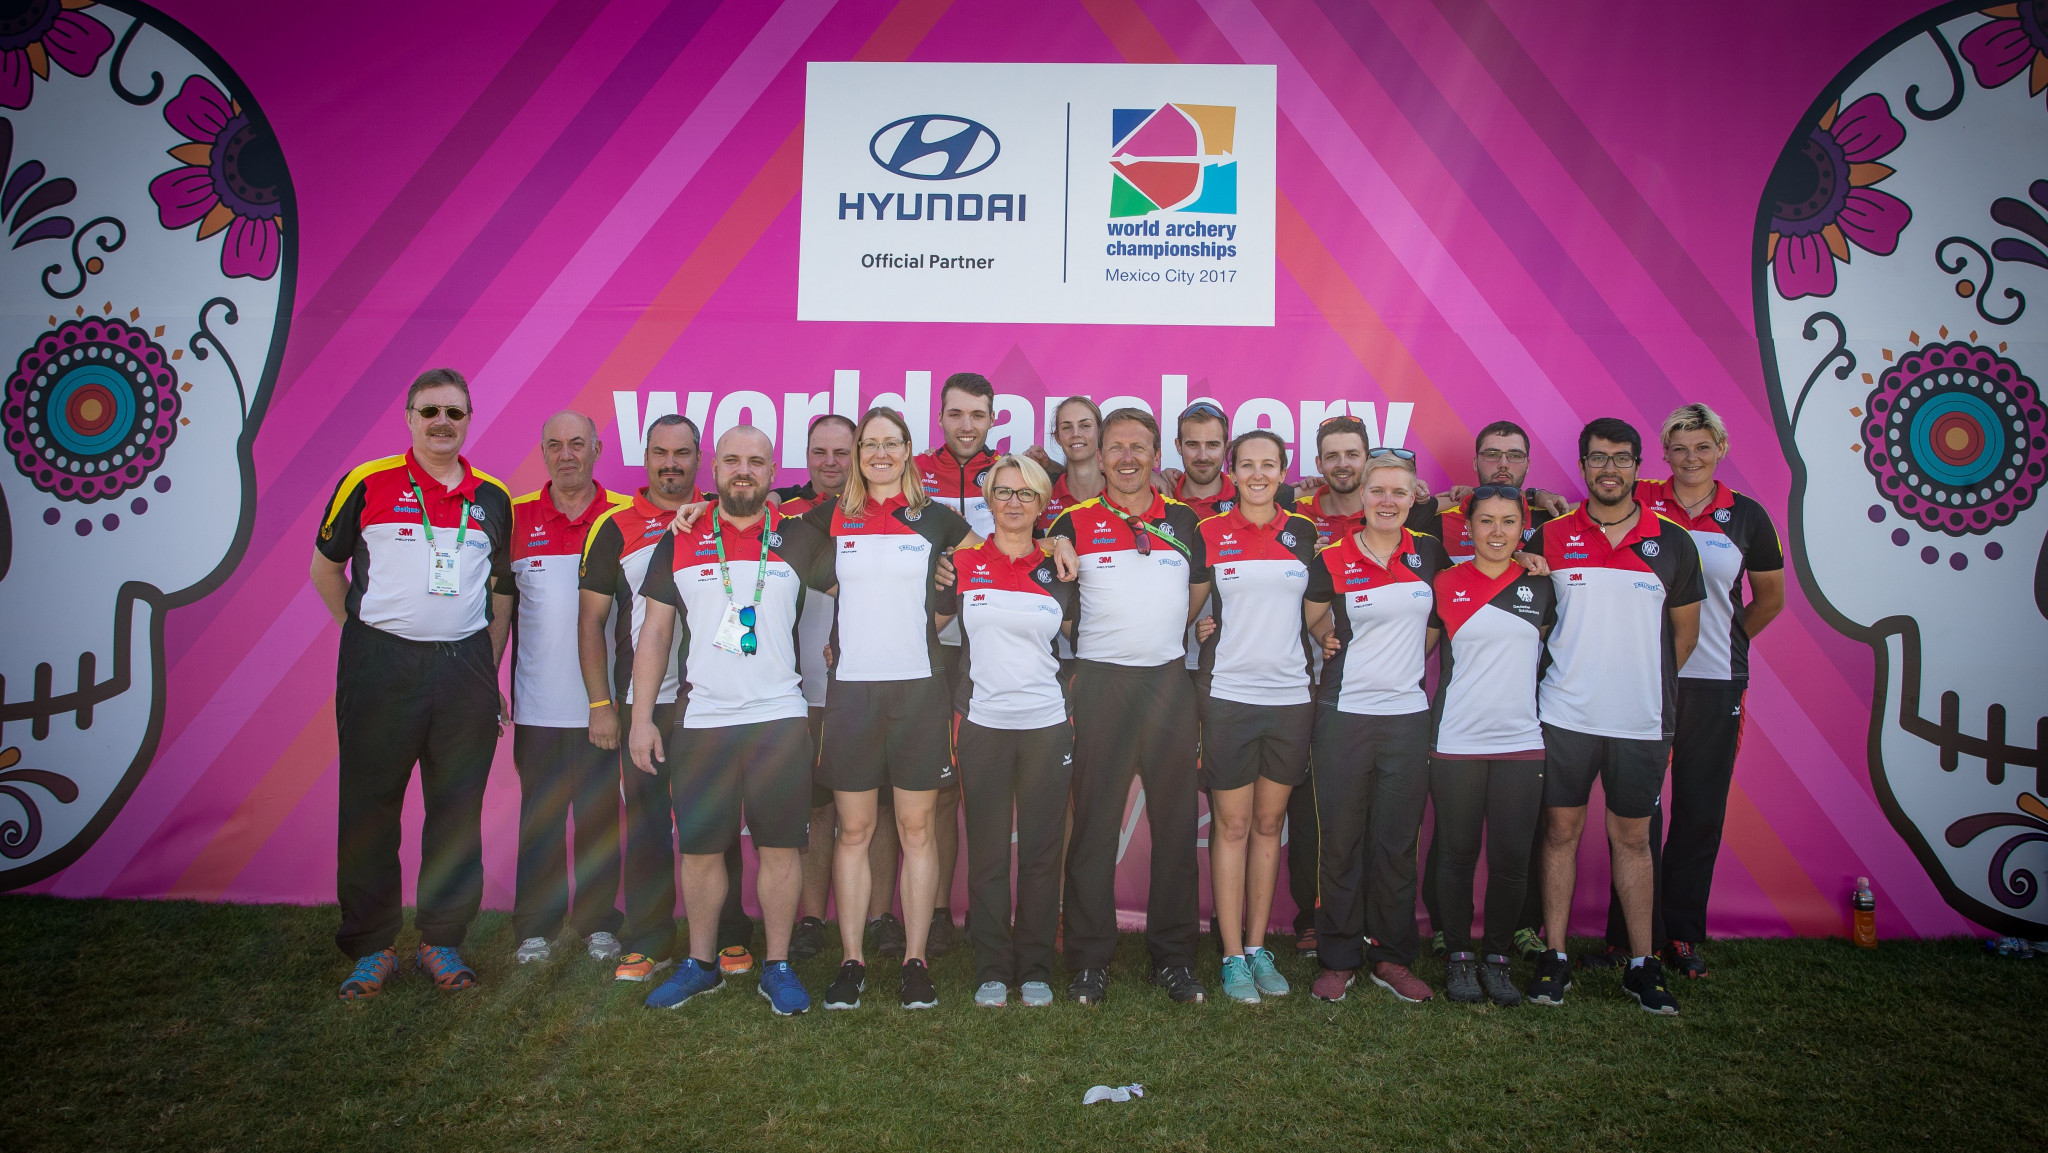 Germany reached both the compound and recurve mixed team finals on a successful day for the country at the World Archery Championships in Mexico City ©World Archery